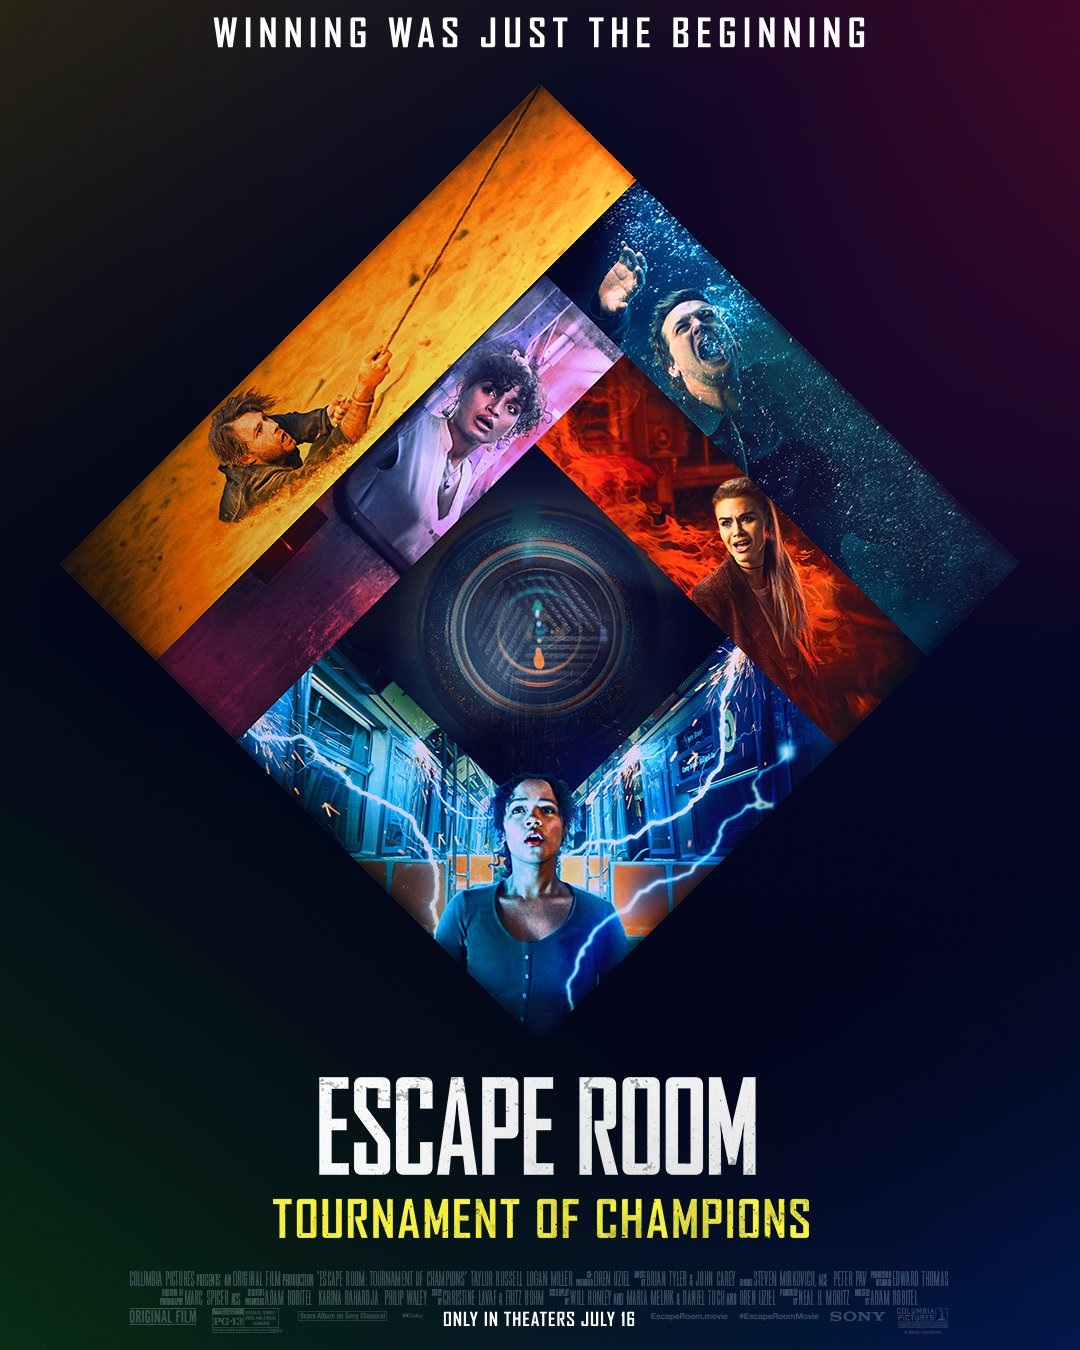 Escape Room: Tournament of Champions': Official Poster Teases the New Rooms  We'll Be Entering This Summer - Bloody Disgusting